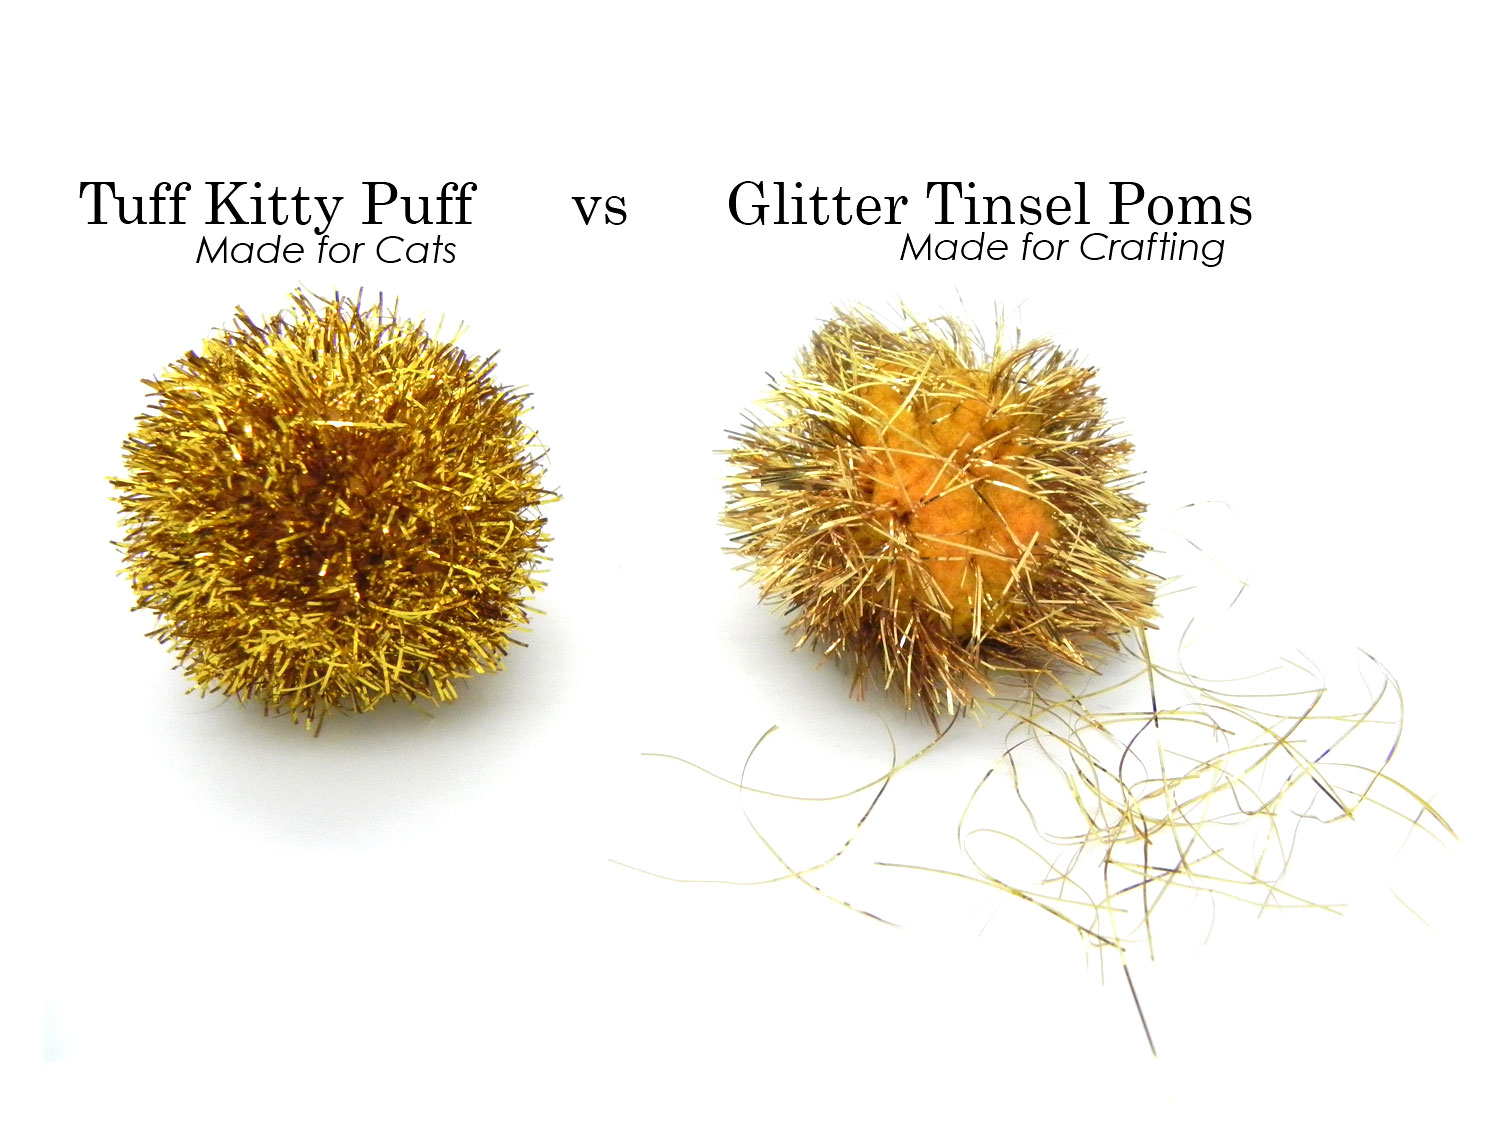 sparkleball-comparision.jpg